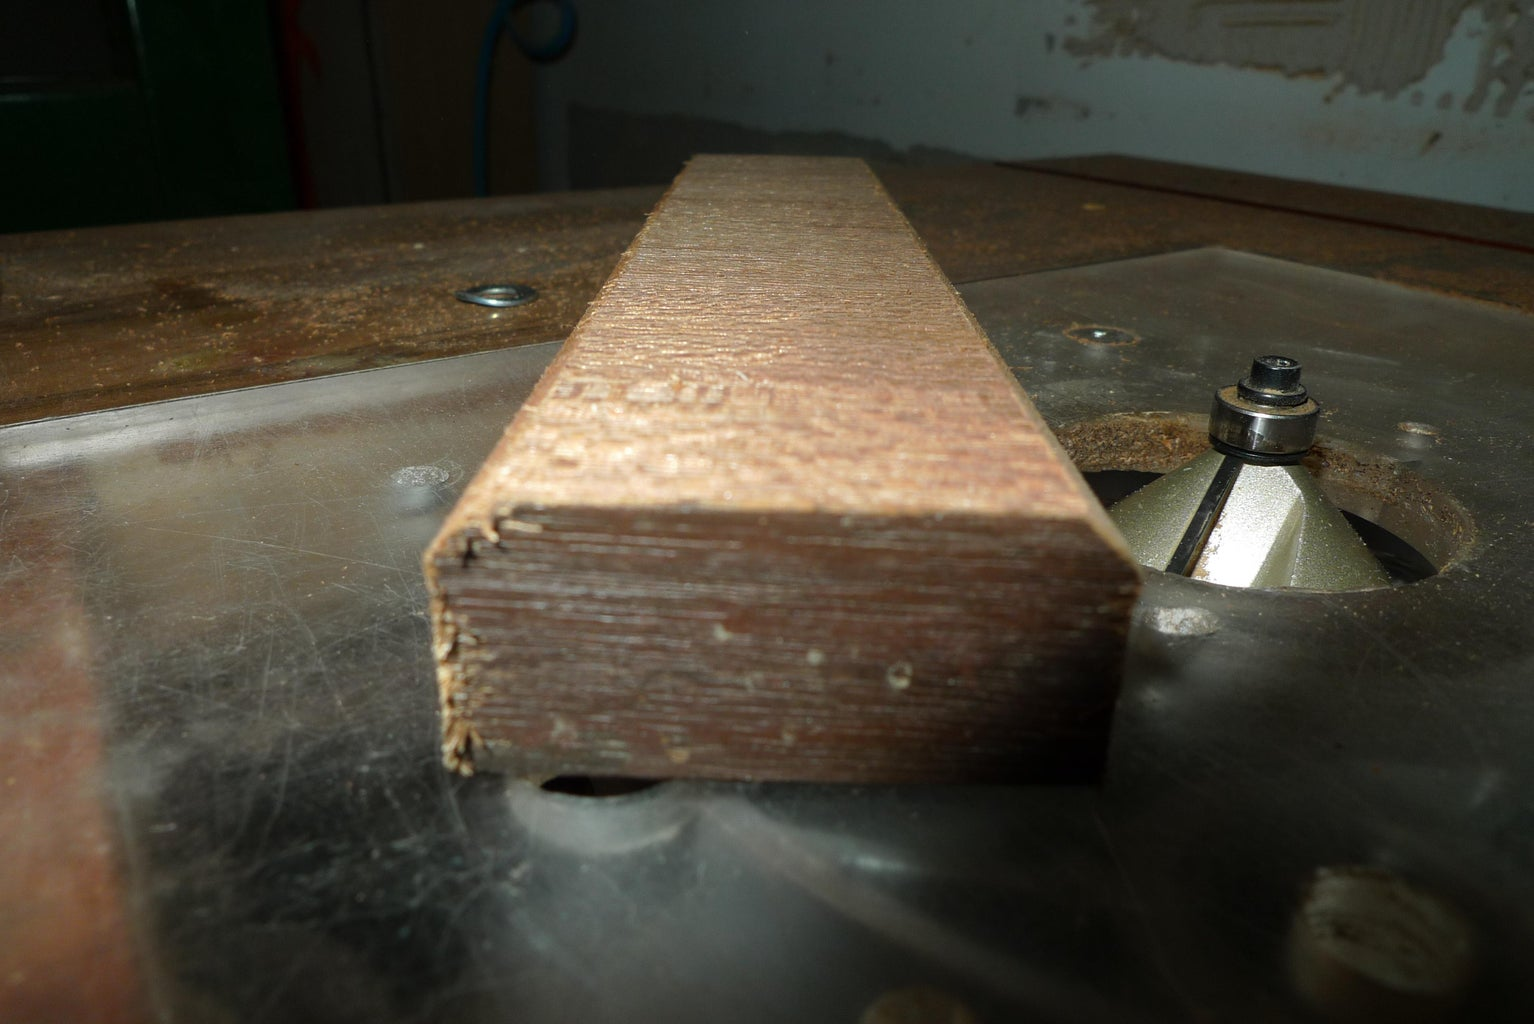 Making the Segmented Pieces